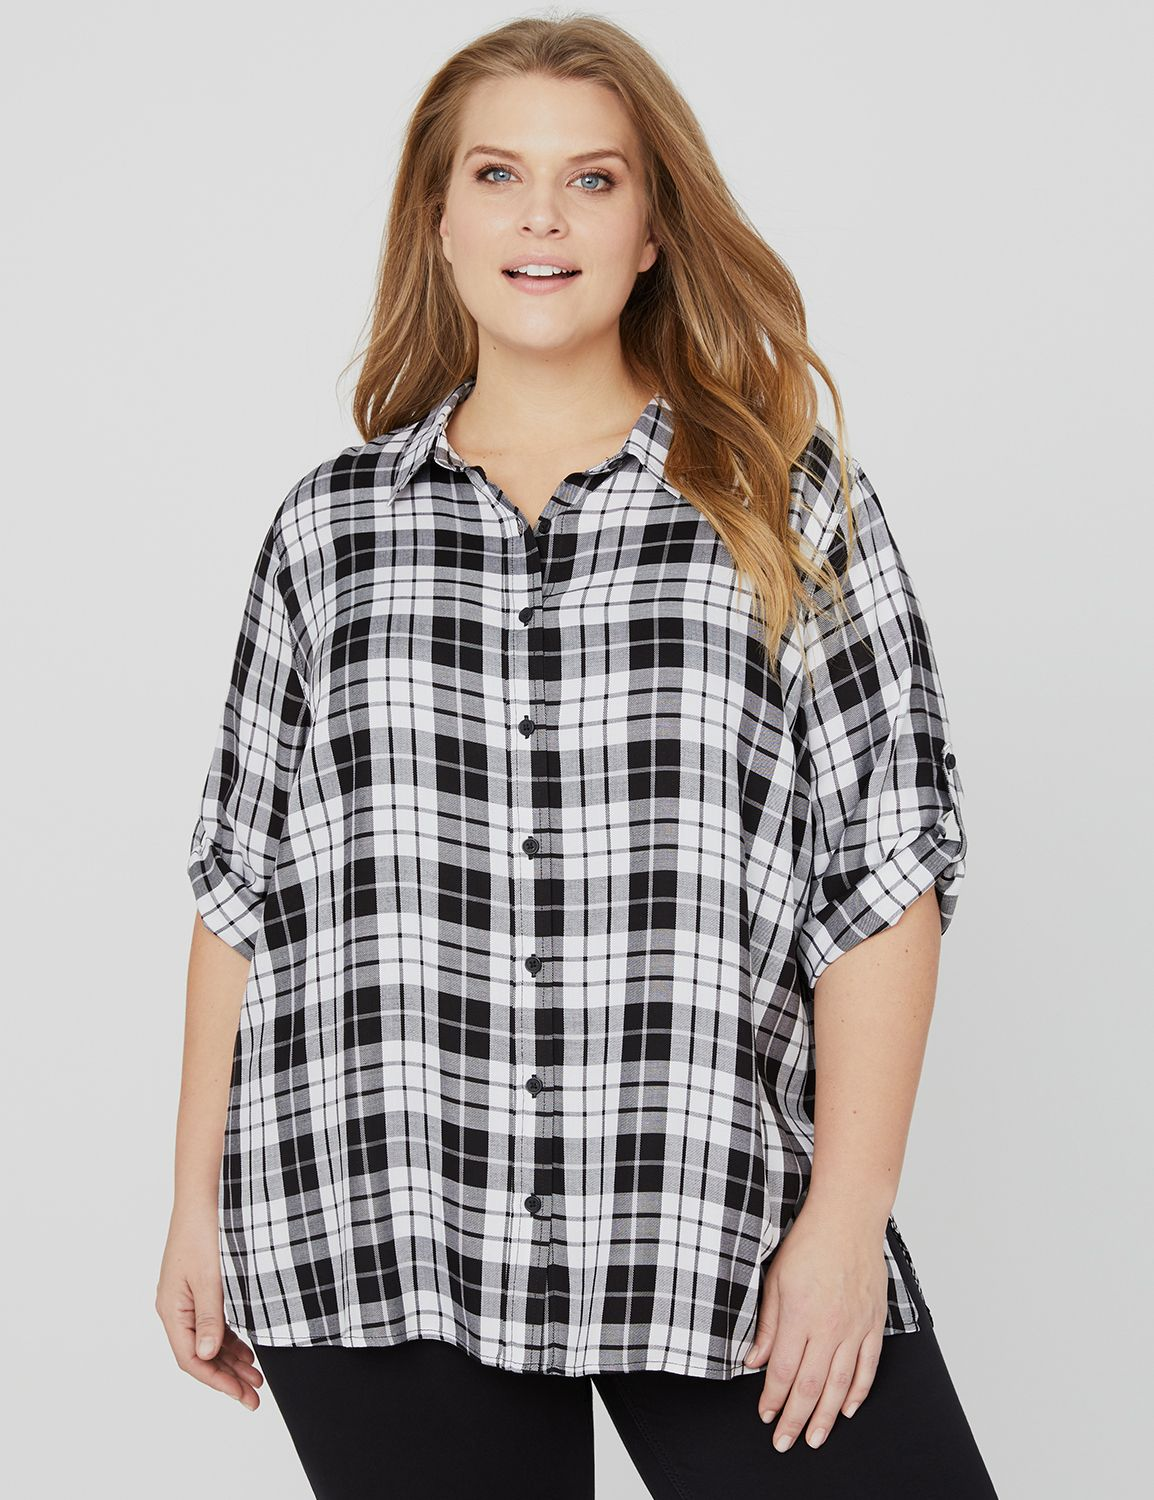 Hybrid Buttonfront Shirt 1093256 3/4 SLV PLAID BACK SHIRT MP-300101850